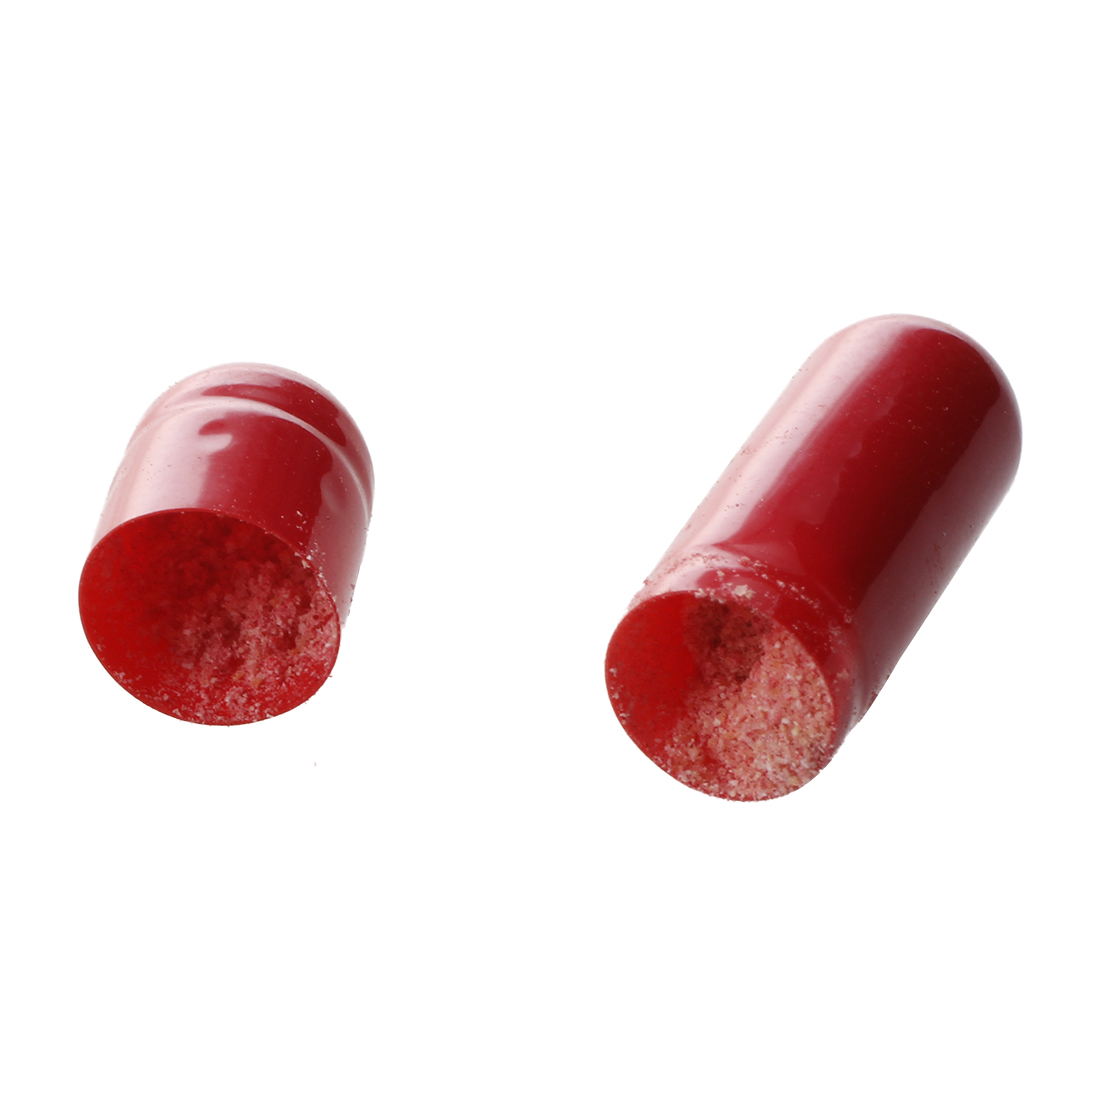 New SODIAL(R) Blood Capsules - Just Like in the Movies!